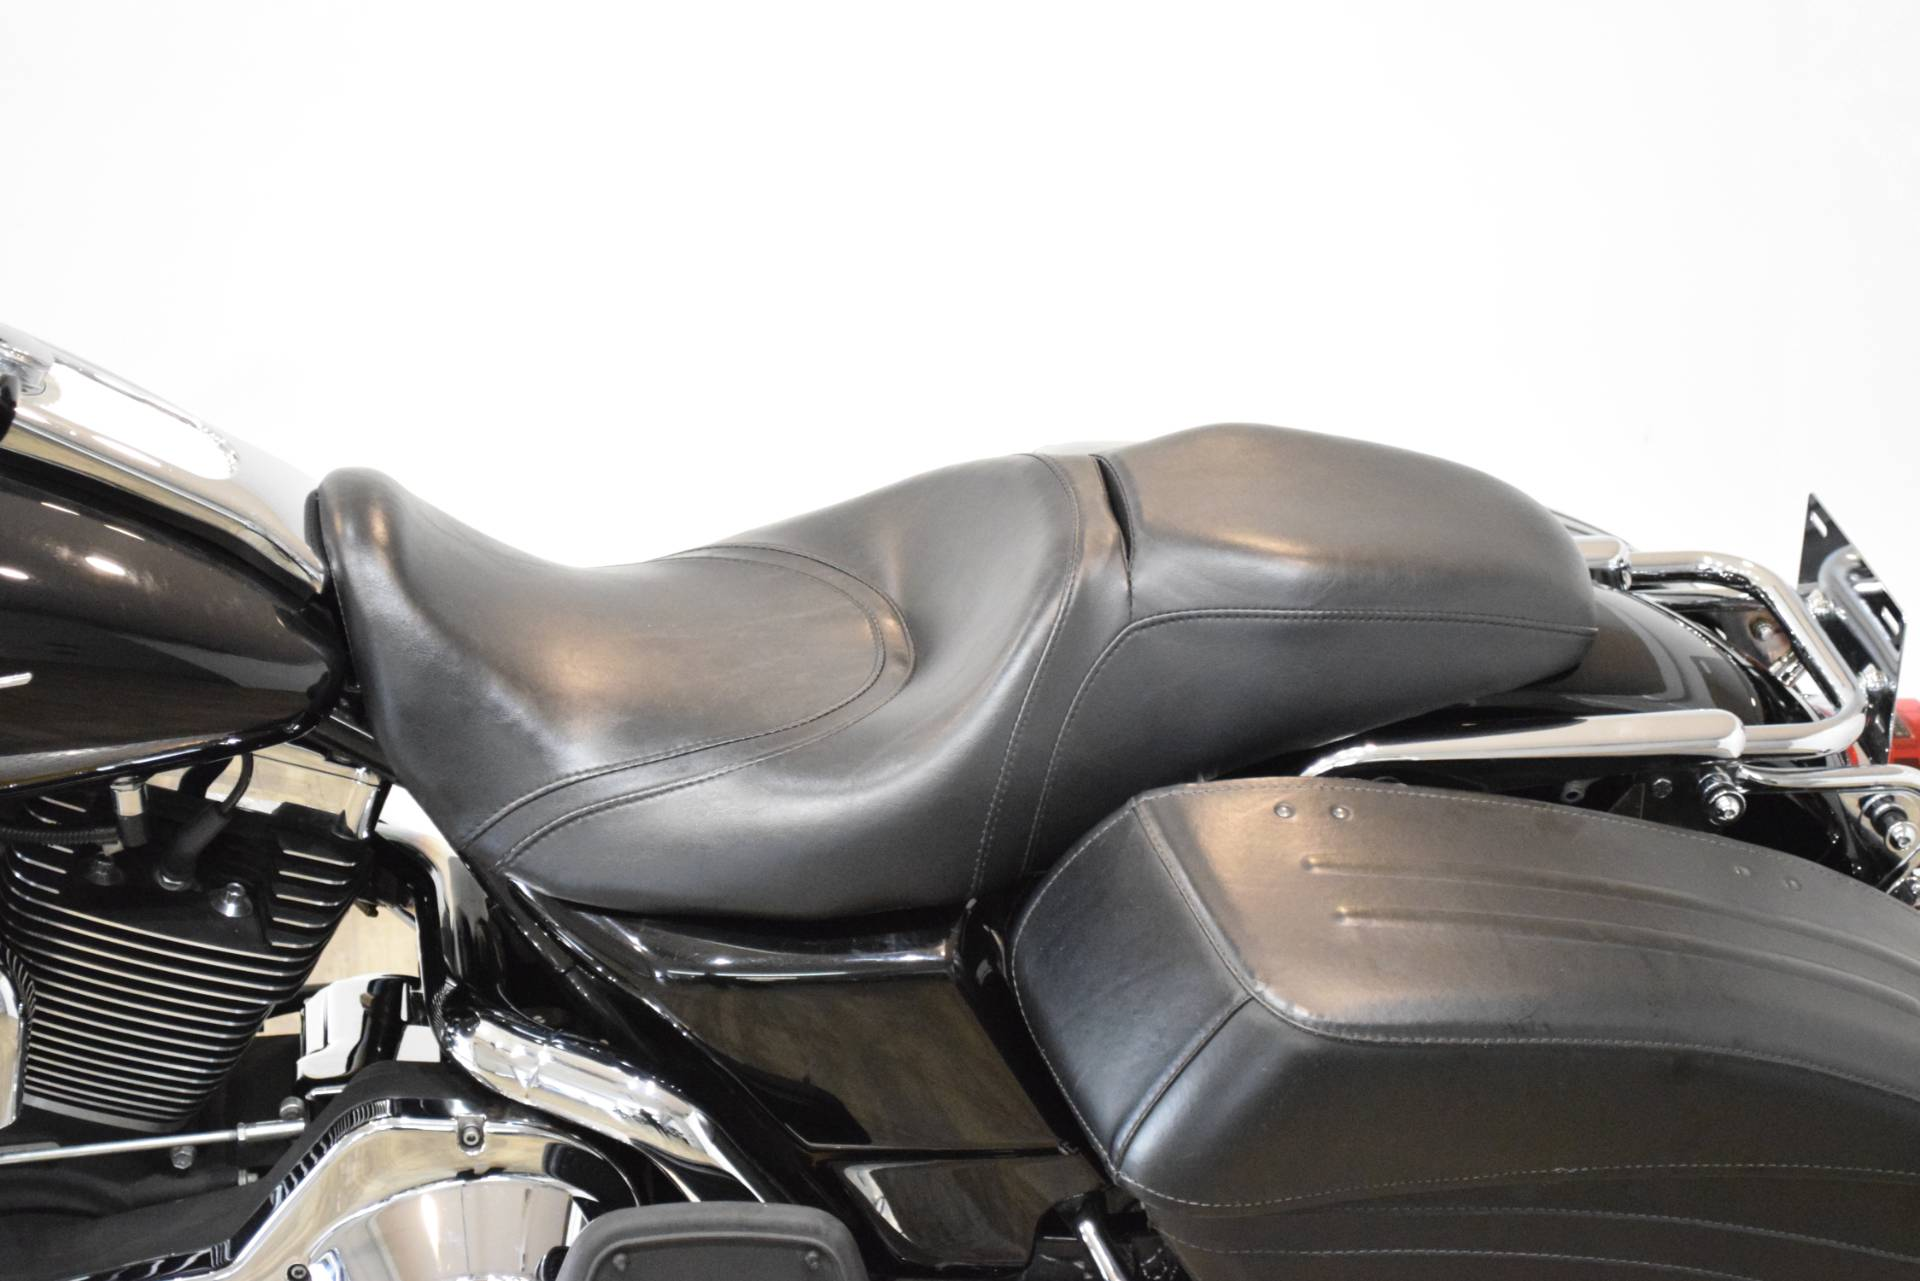 2005 Harley-Davidson FLHR/FLHRI Road King® in Wauconda, Illinois - Photo 18